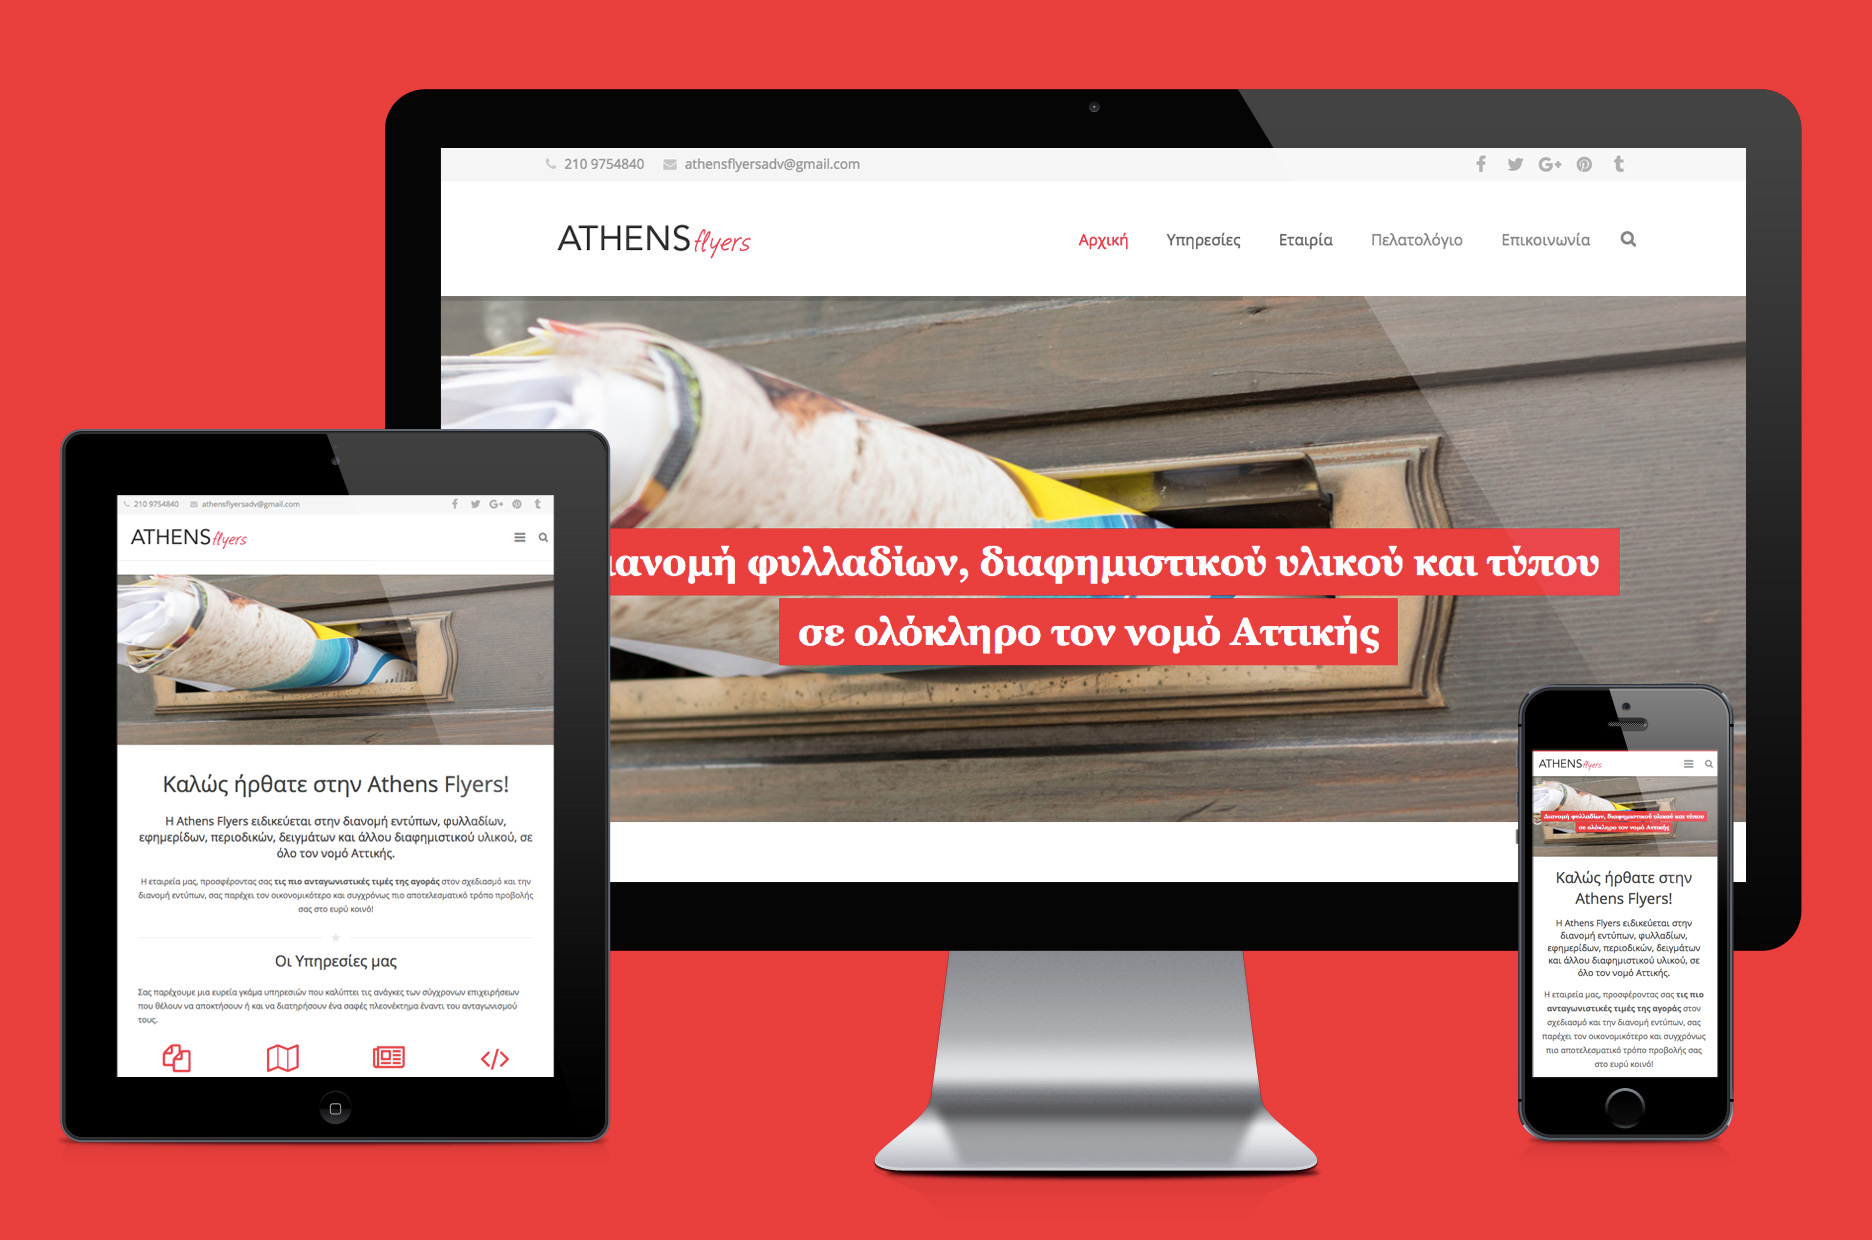 Athens Flyers website design